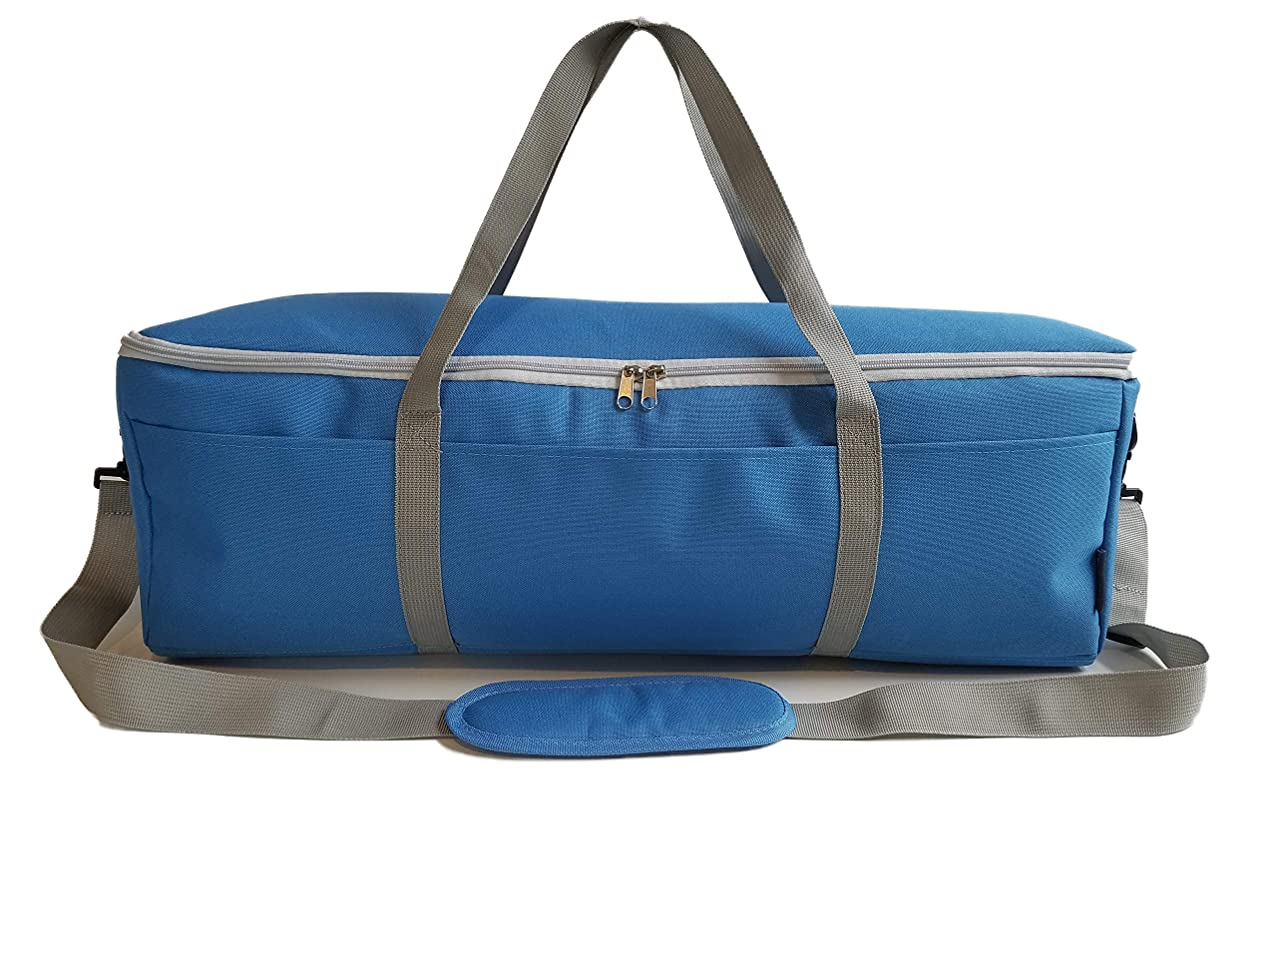 StarPlus2 Padded Craft Machine Shoulder Carry Bag, Sized to Fit Cricut Explore, Explore Air, Air 2, One, Maker, Silhouette Cameo 3 - Blue